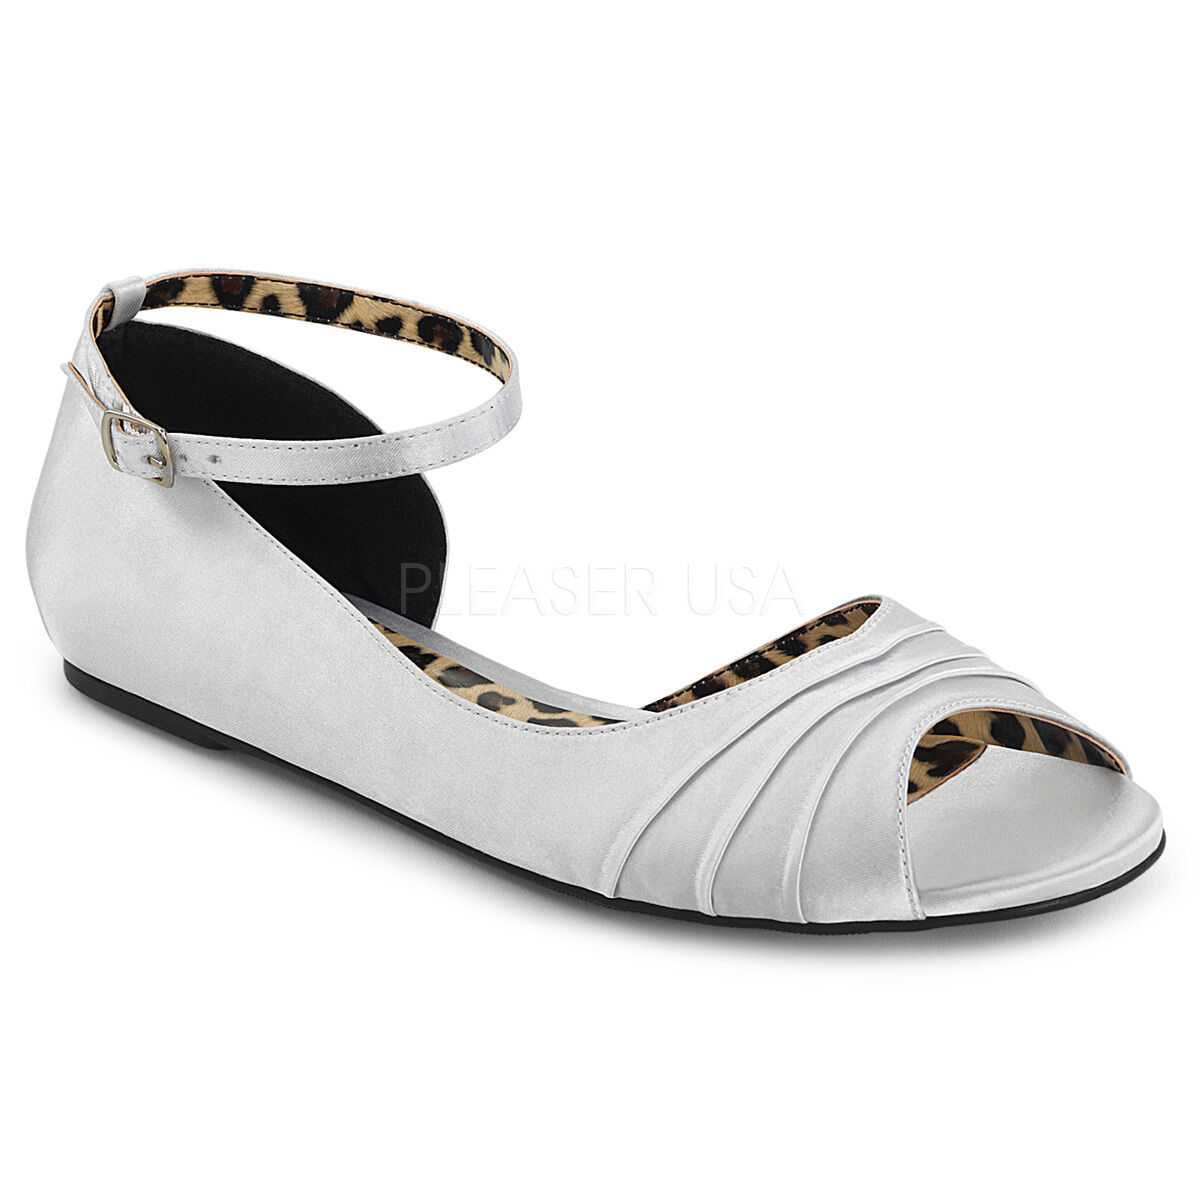 PLEASER Silver Satin Flats Women's shoes with Ankle Strap Large SIZES ANNA03 SSA